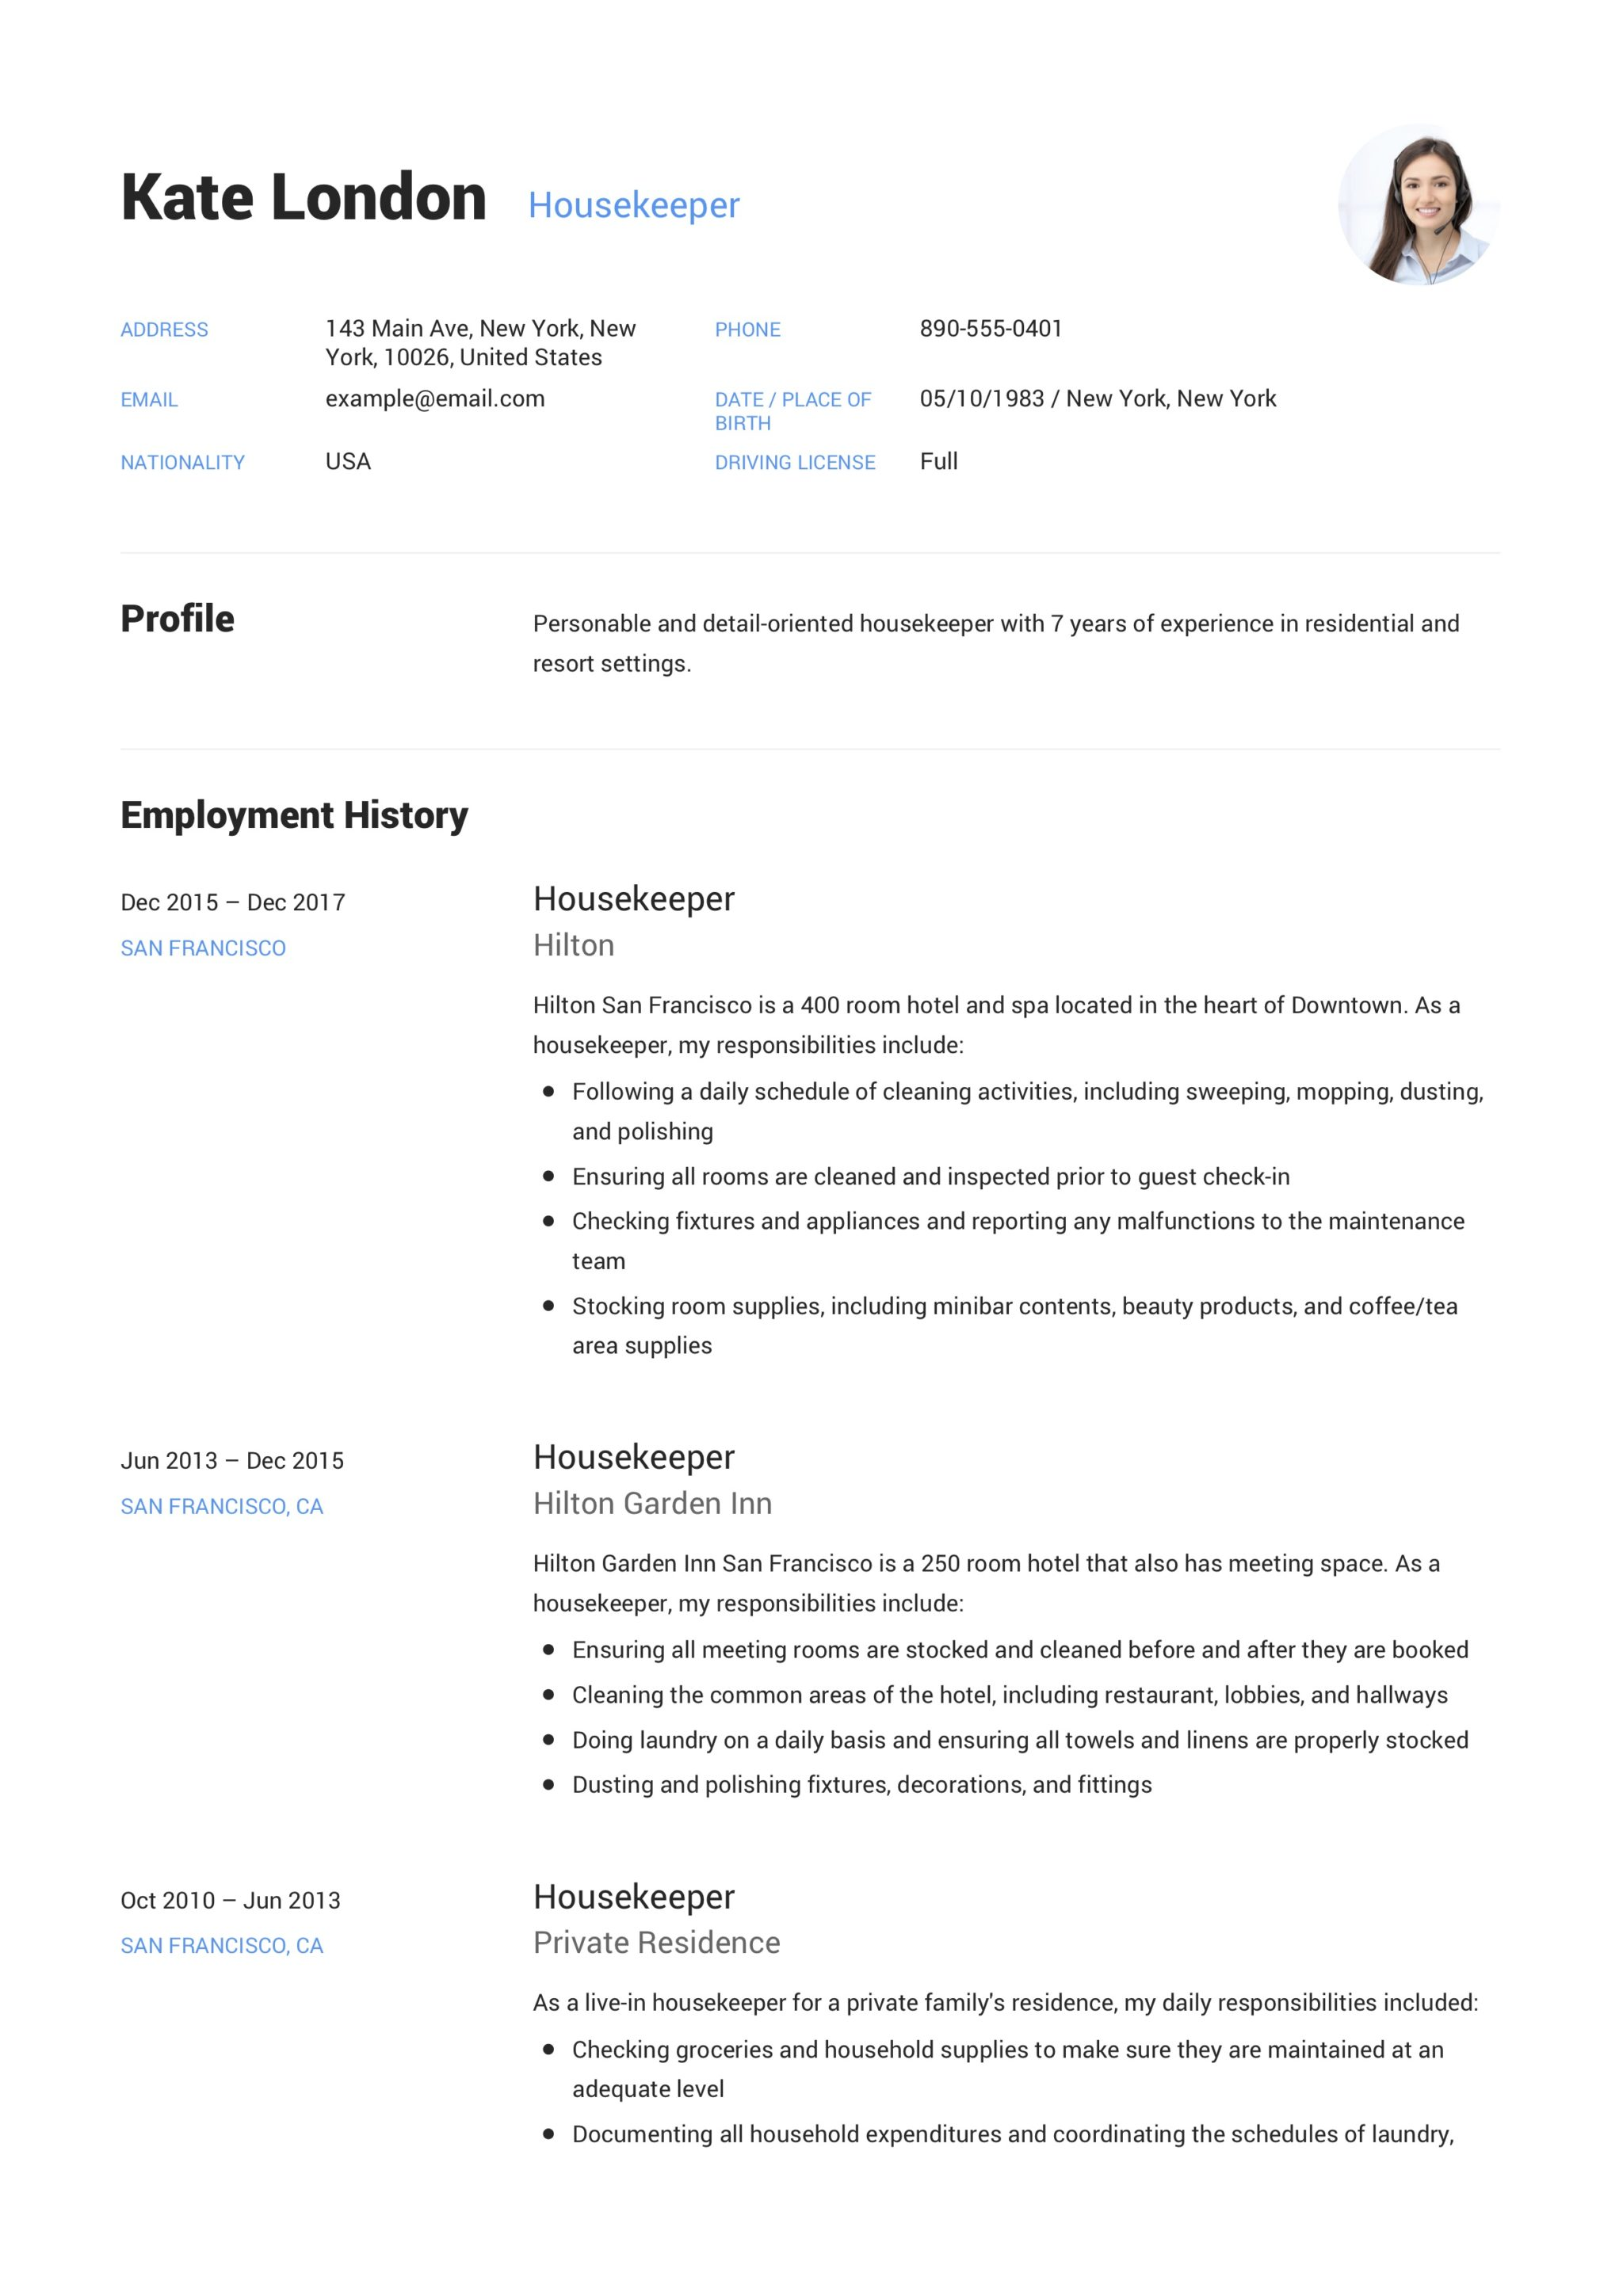 Housekeeping Resume Skills.Resume Guide Housekpeer 12 Resume Samples Pdf 2019